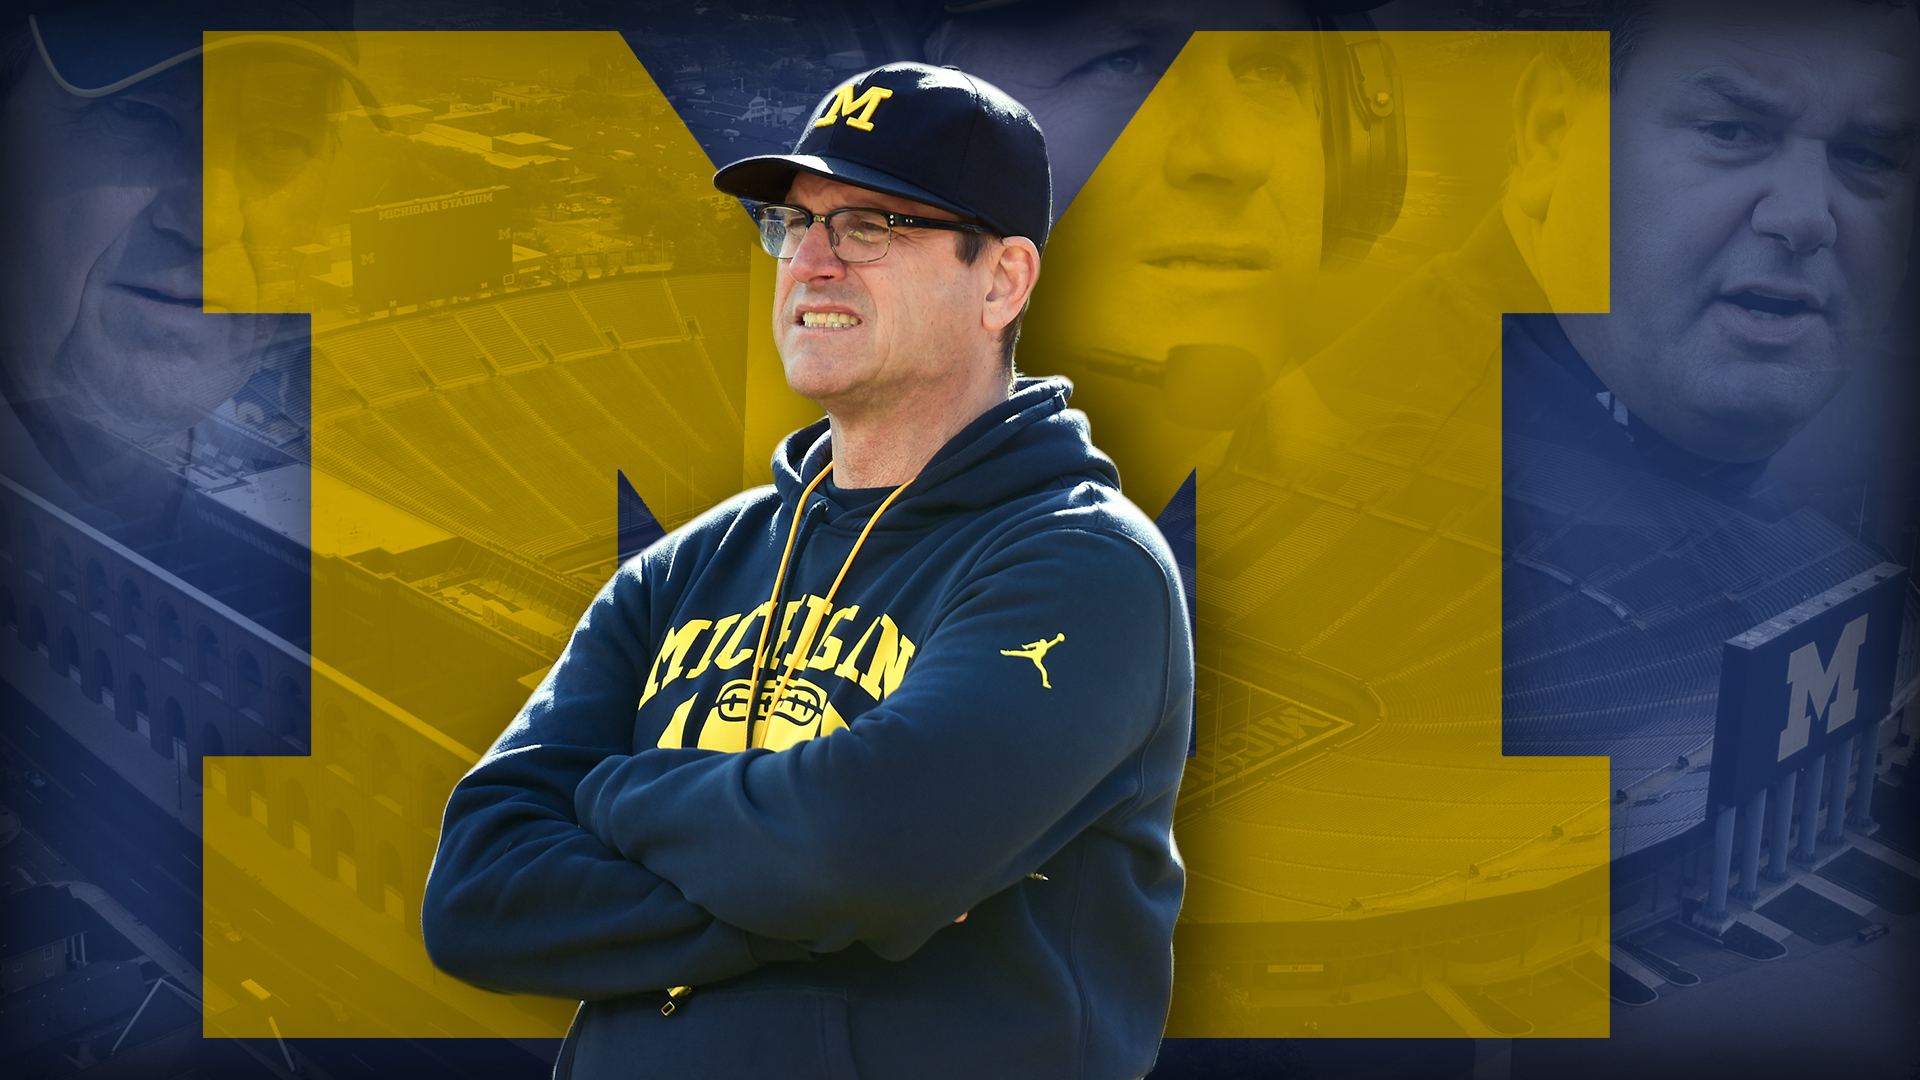 Jim Harbaugh and Michigan football: The cash is flowing but the trophy case is empty